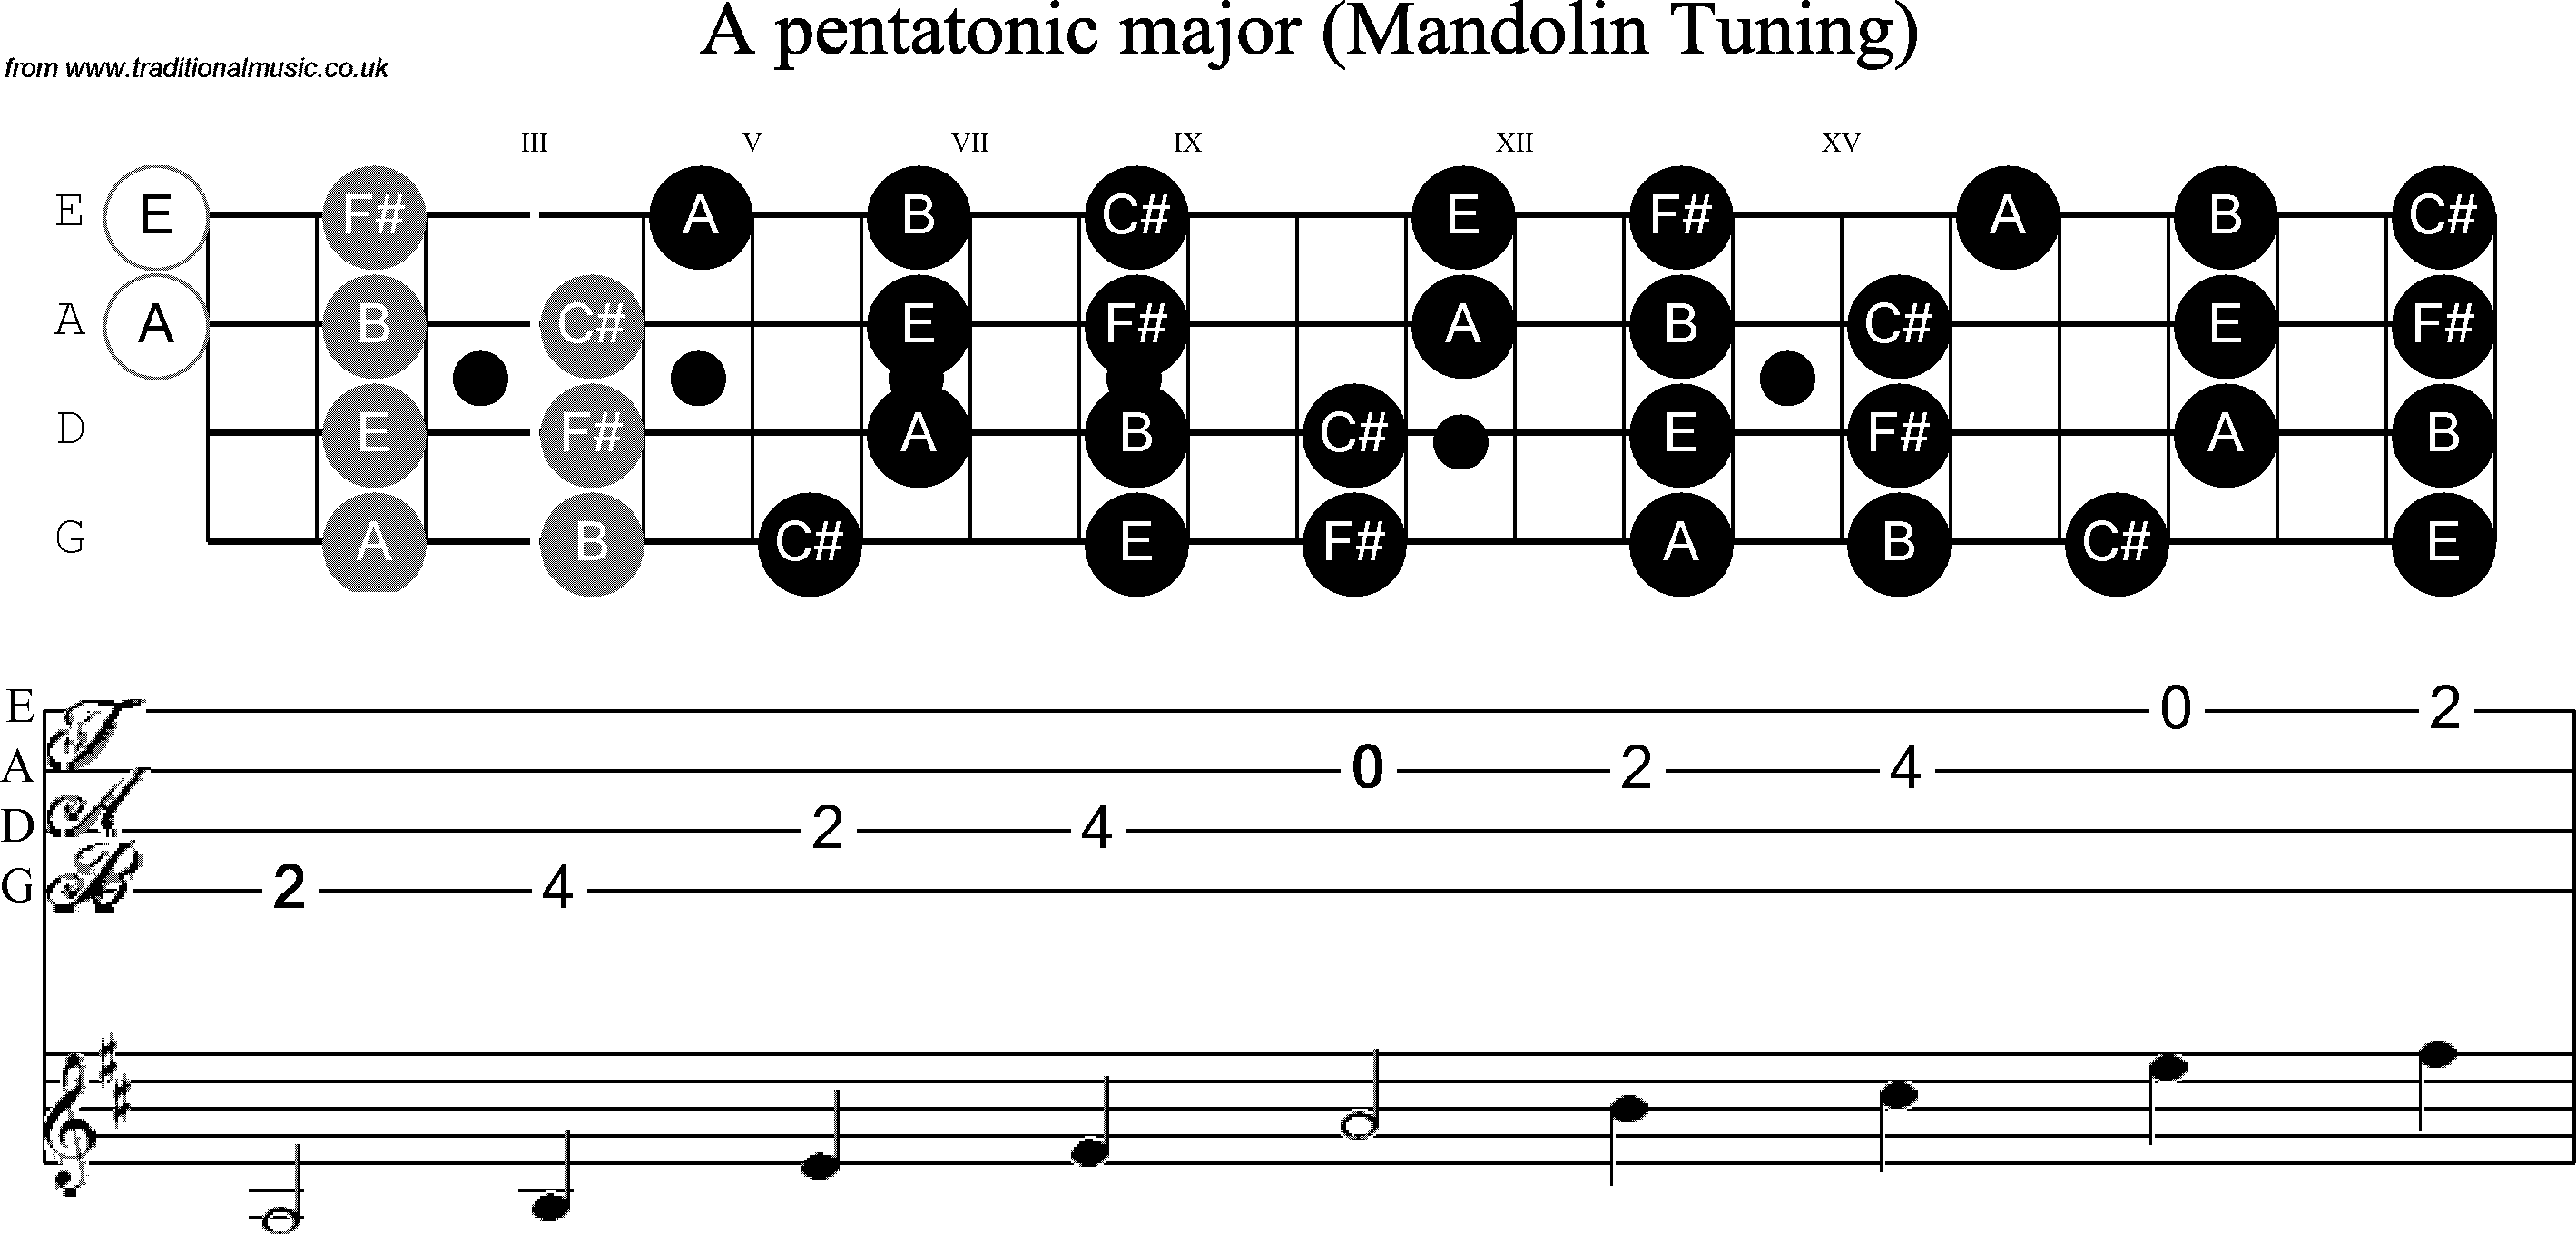 scale stave and neck diagram for mandolin scale a pentatonic rh pinterest com diagram of a [ 2838 x 1359 Pixel ]